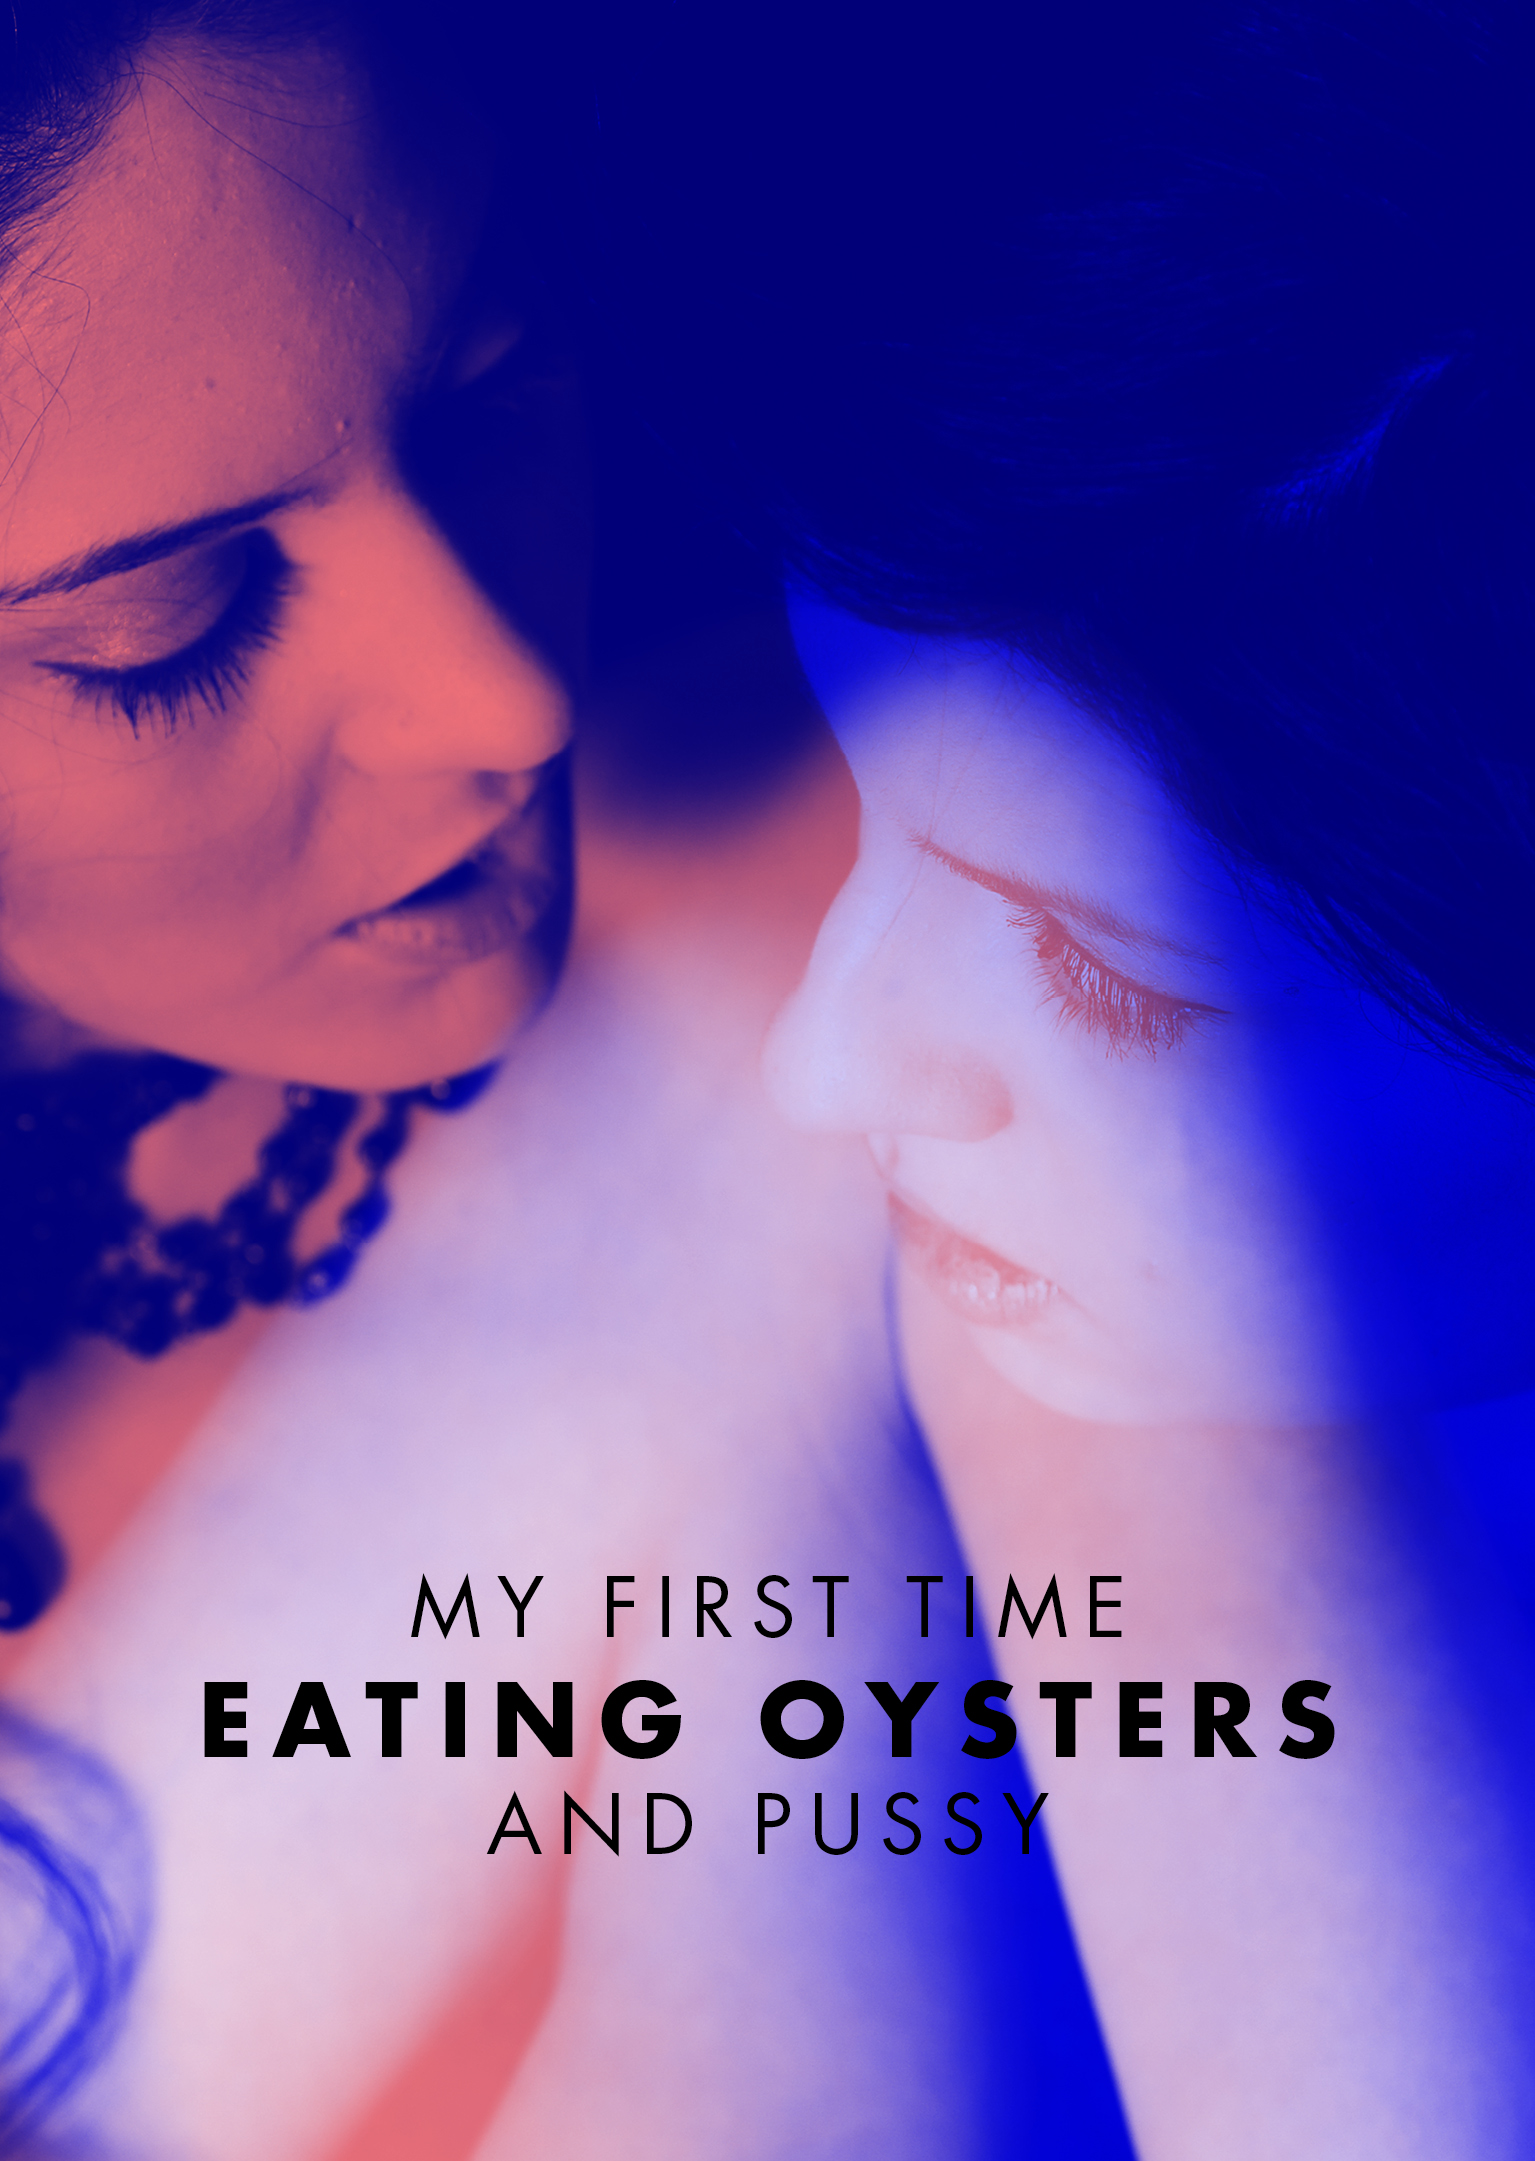 Xconfessions By Erika Lust, My First Time Eating Oysters...and Pussy